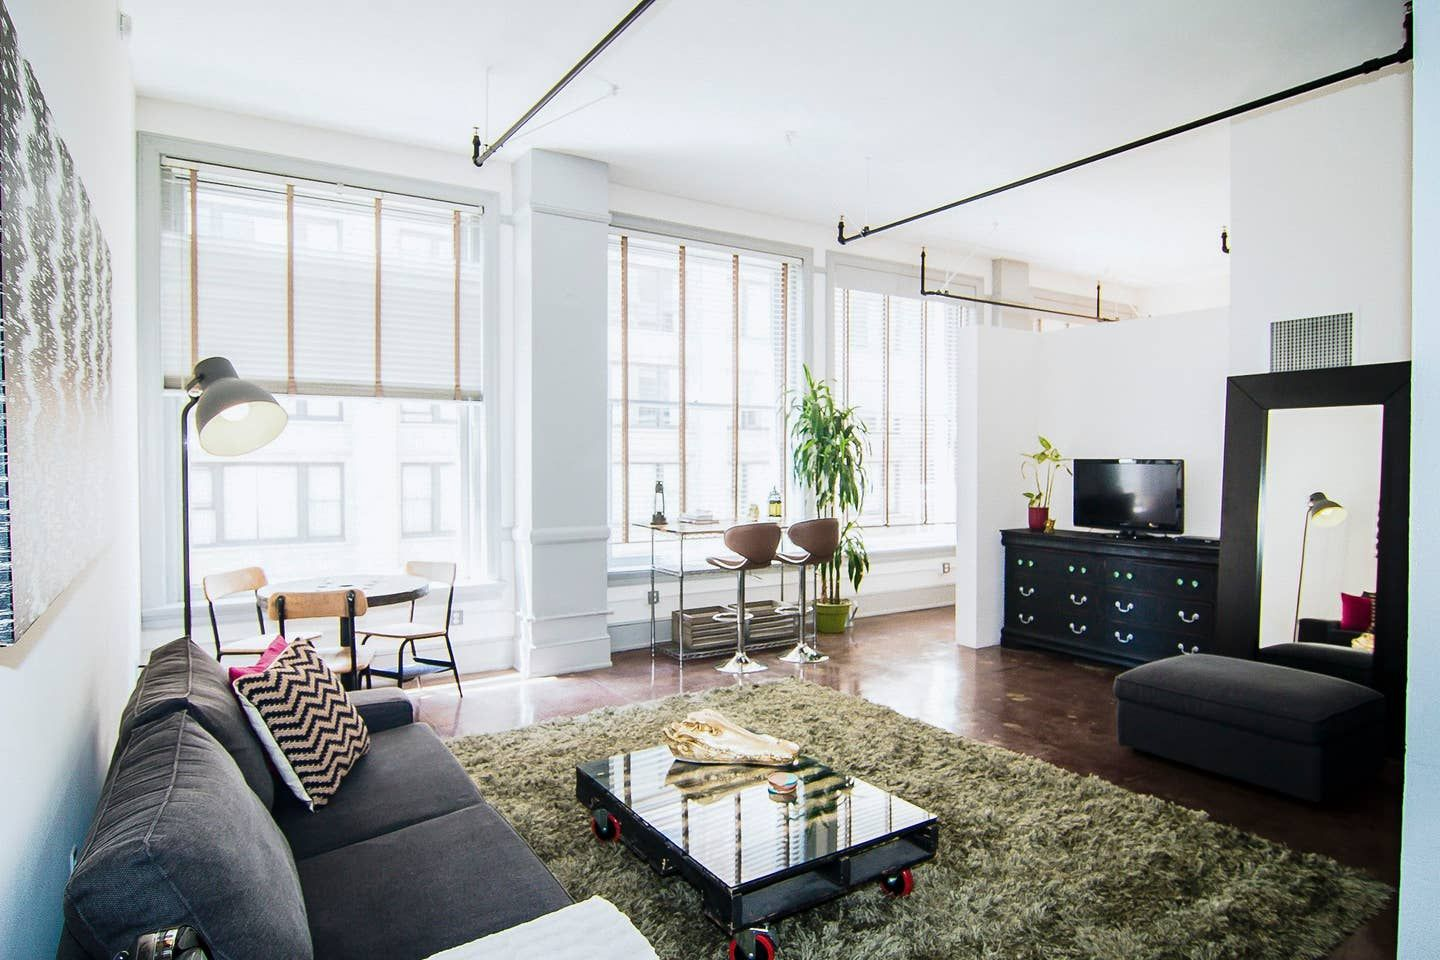 Best downtown loft on airbnb lofts for rent home